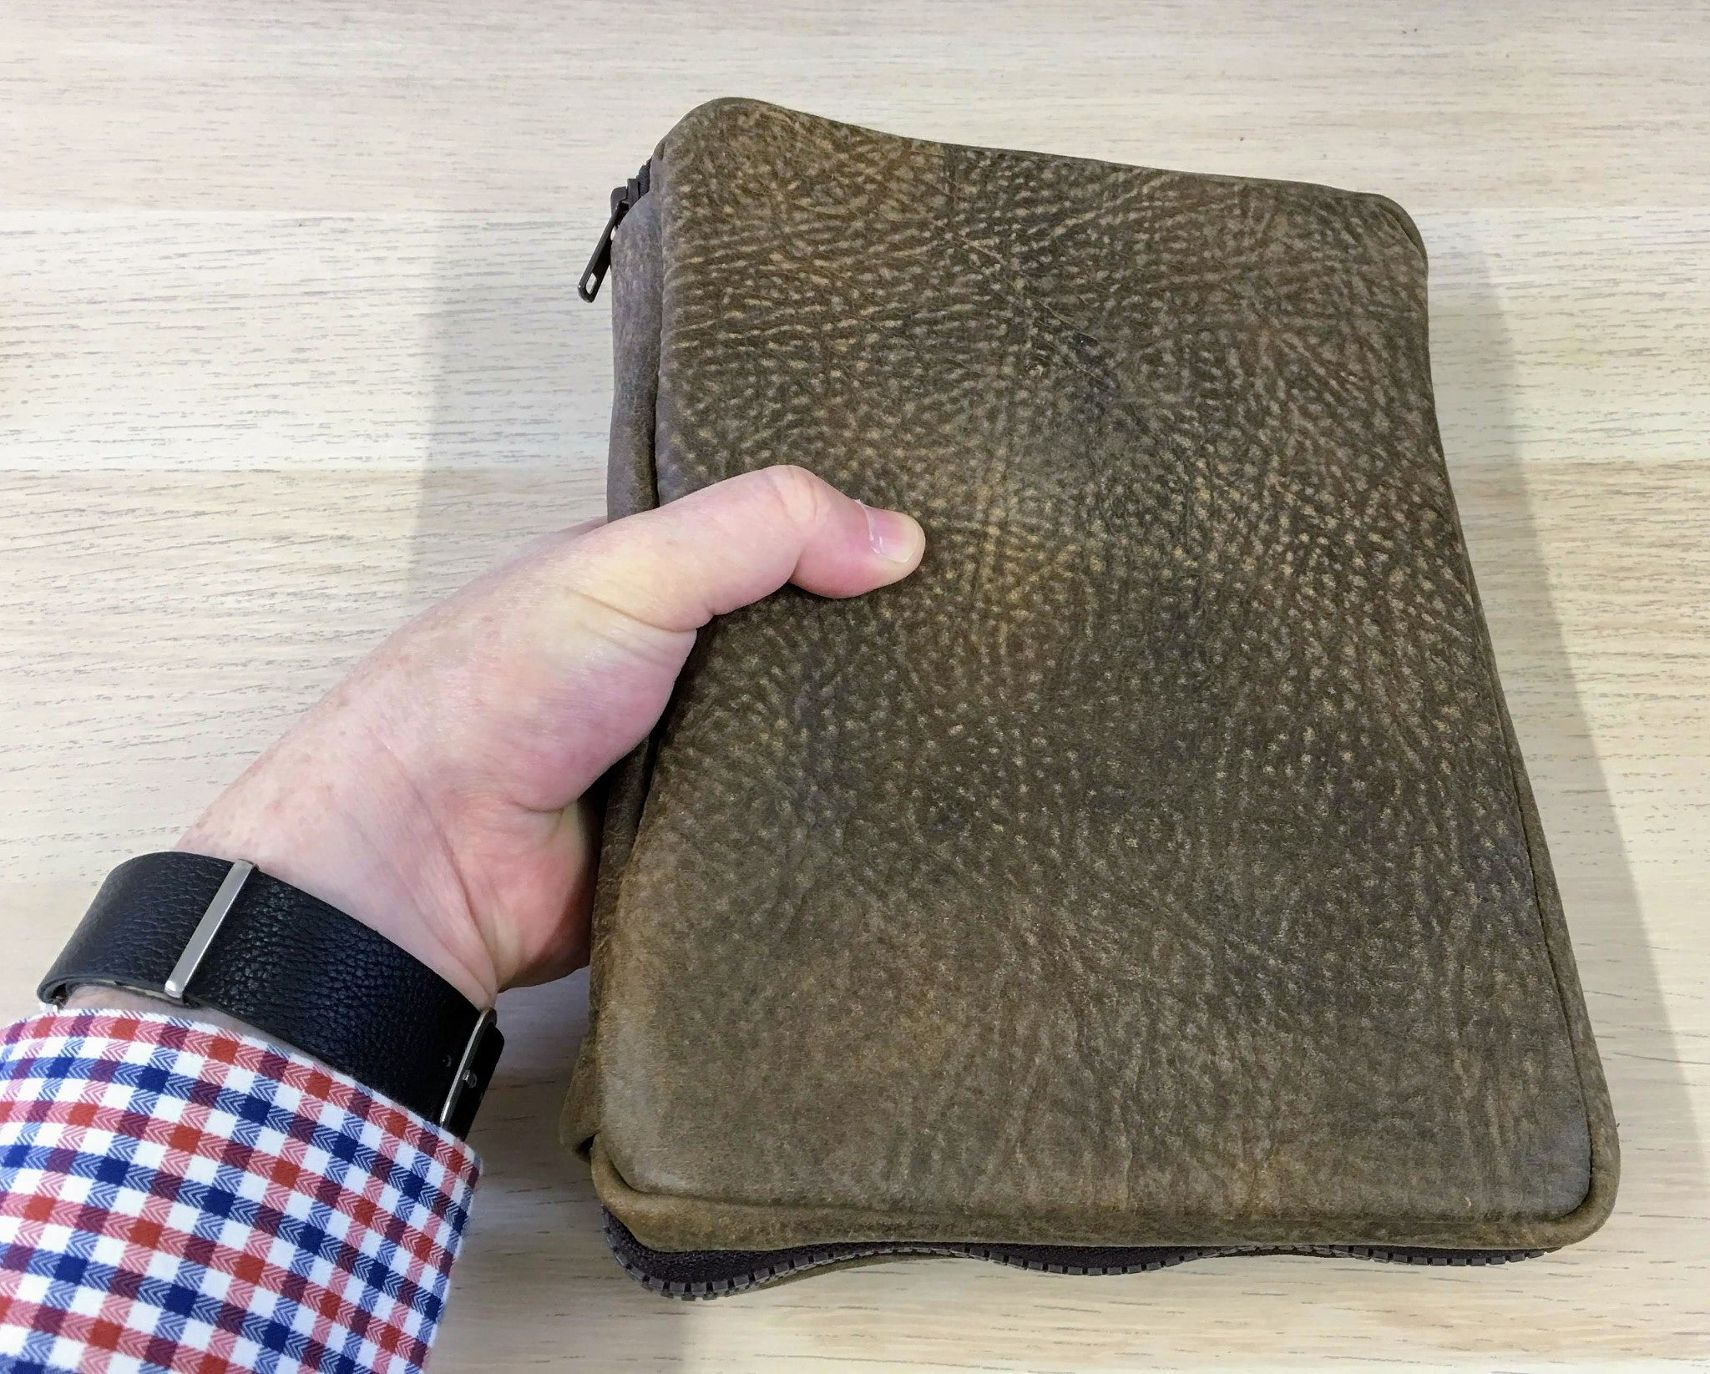 How to Make a Fabric Phone Case